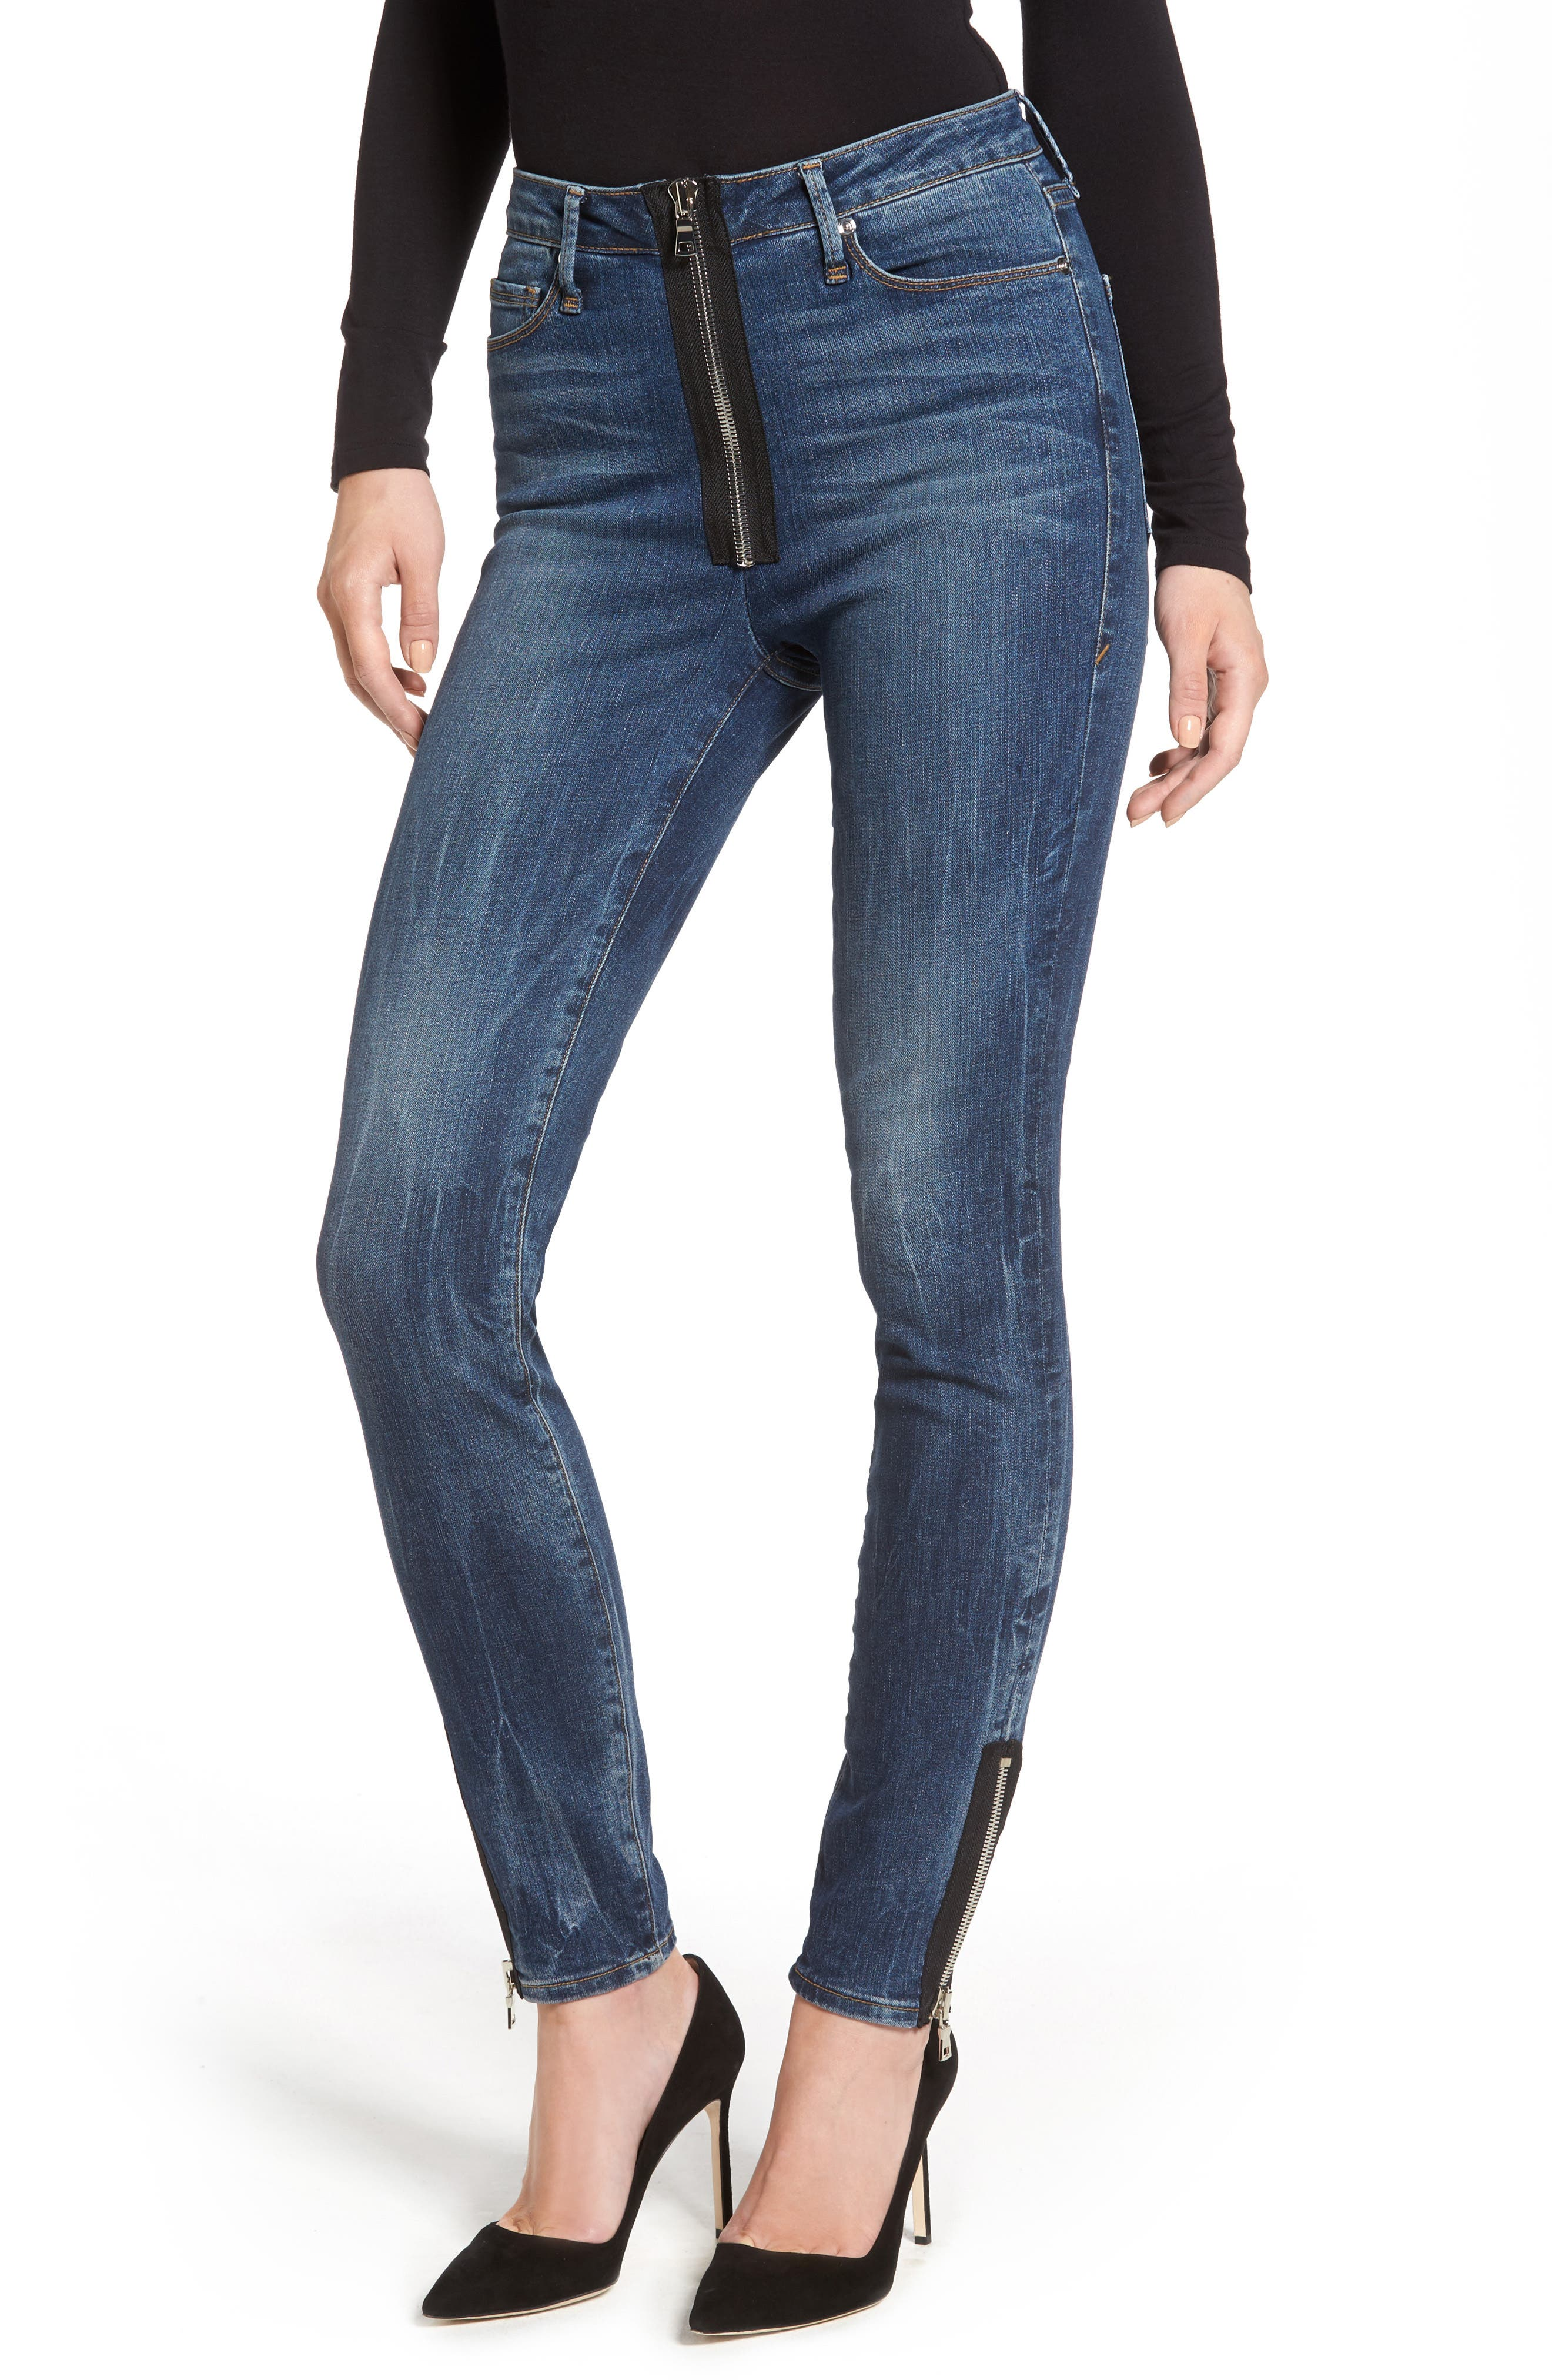 Alternate Image 1 Selected - Good American Good Waist High Rise Ankle Jeans (Blue 076) (Regular & Plus Size)